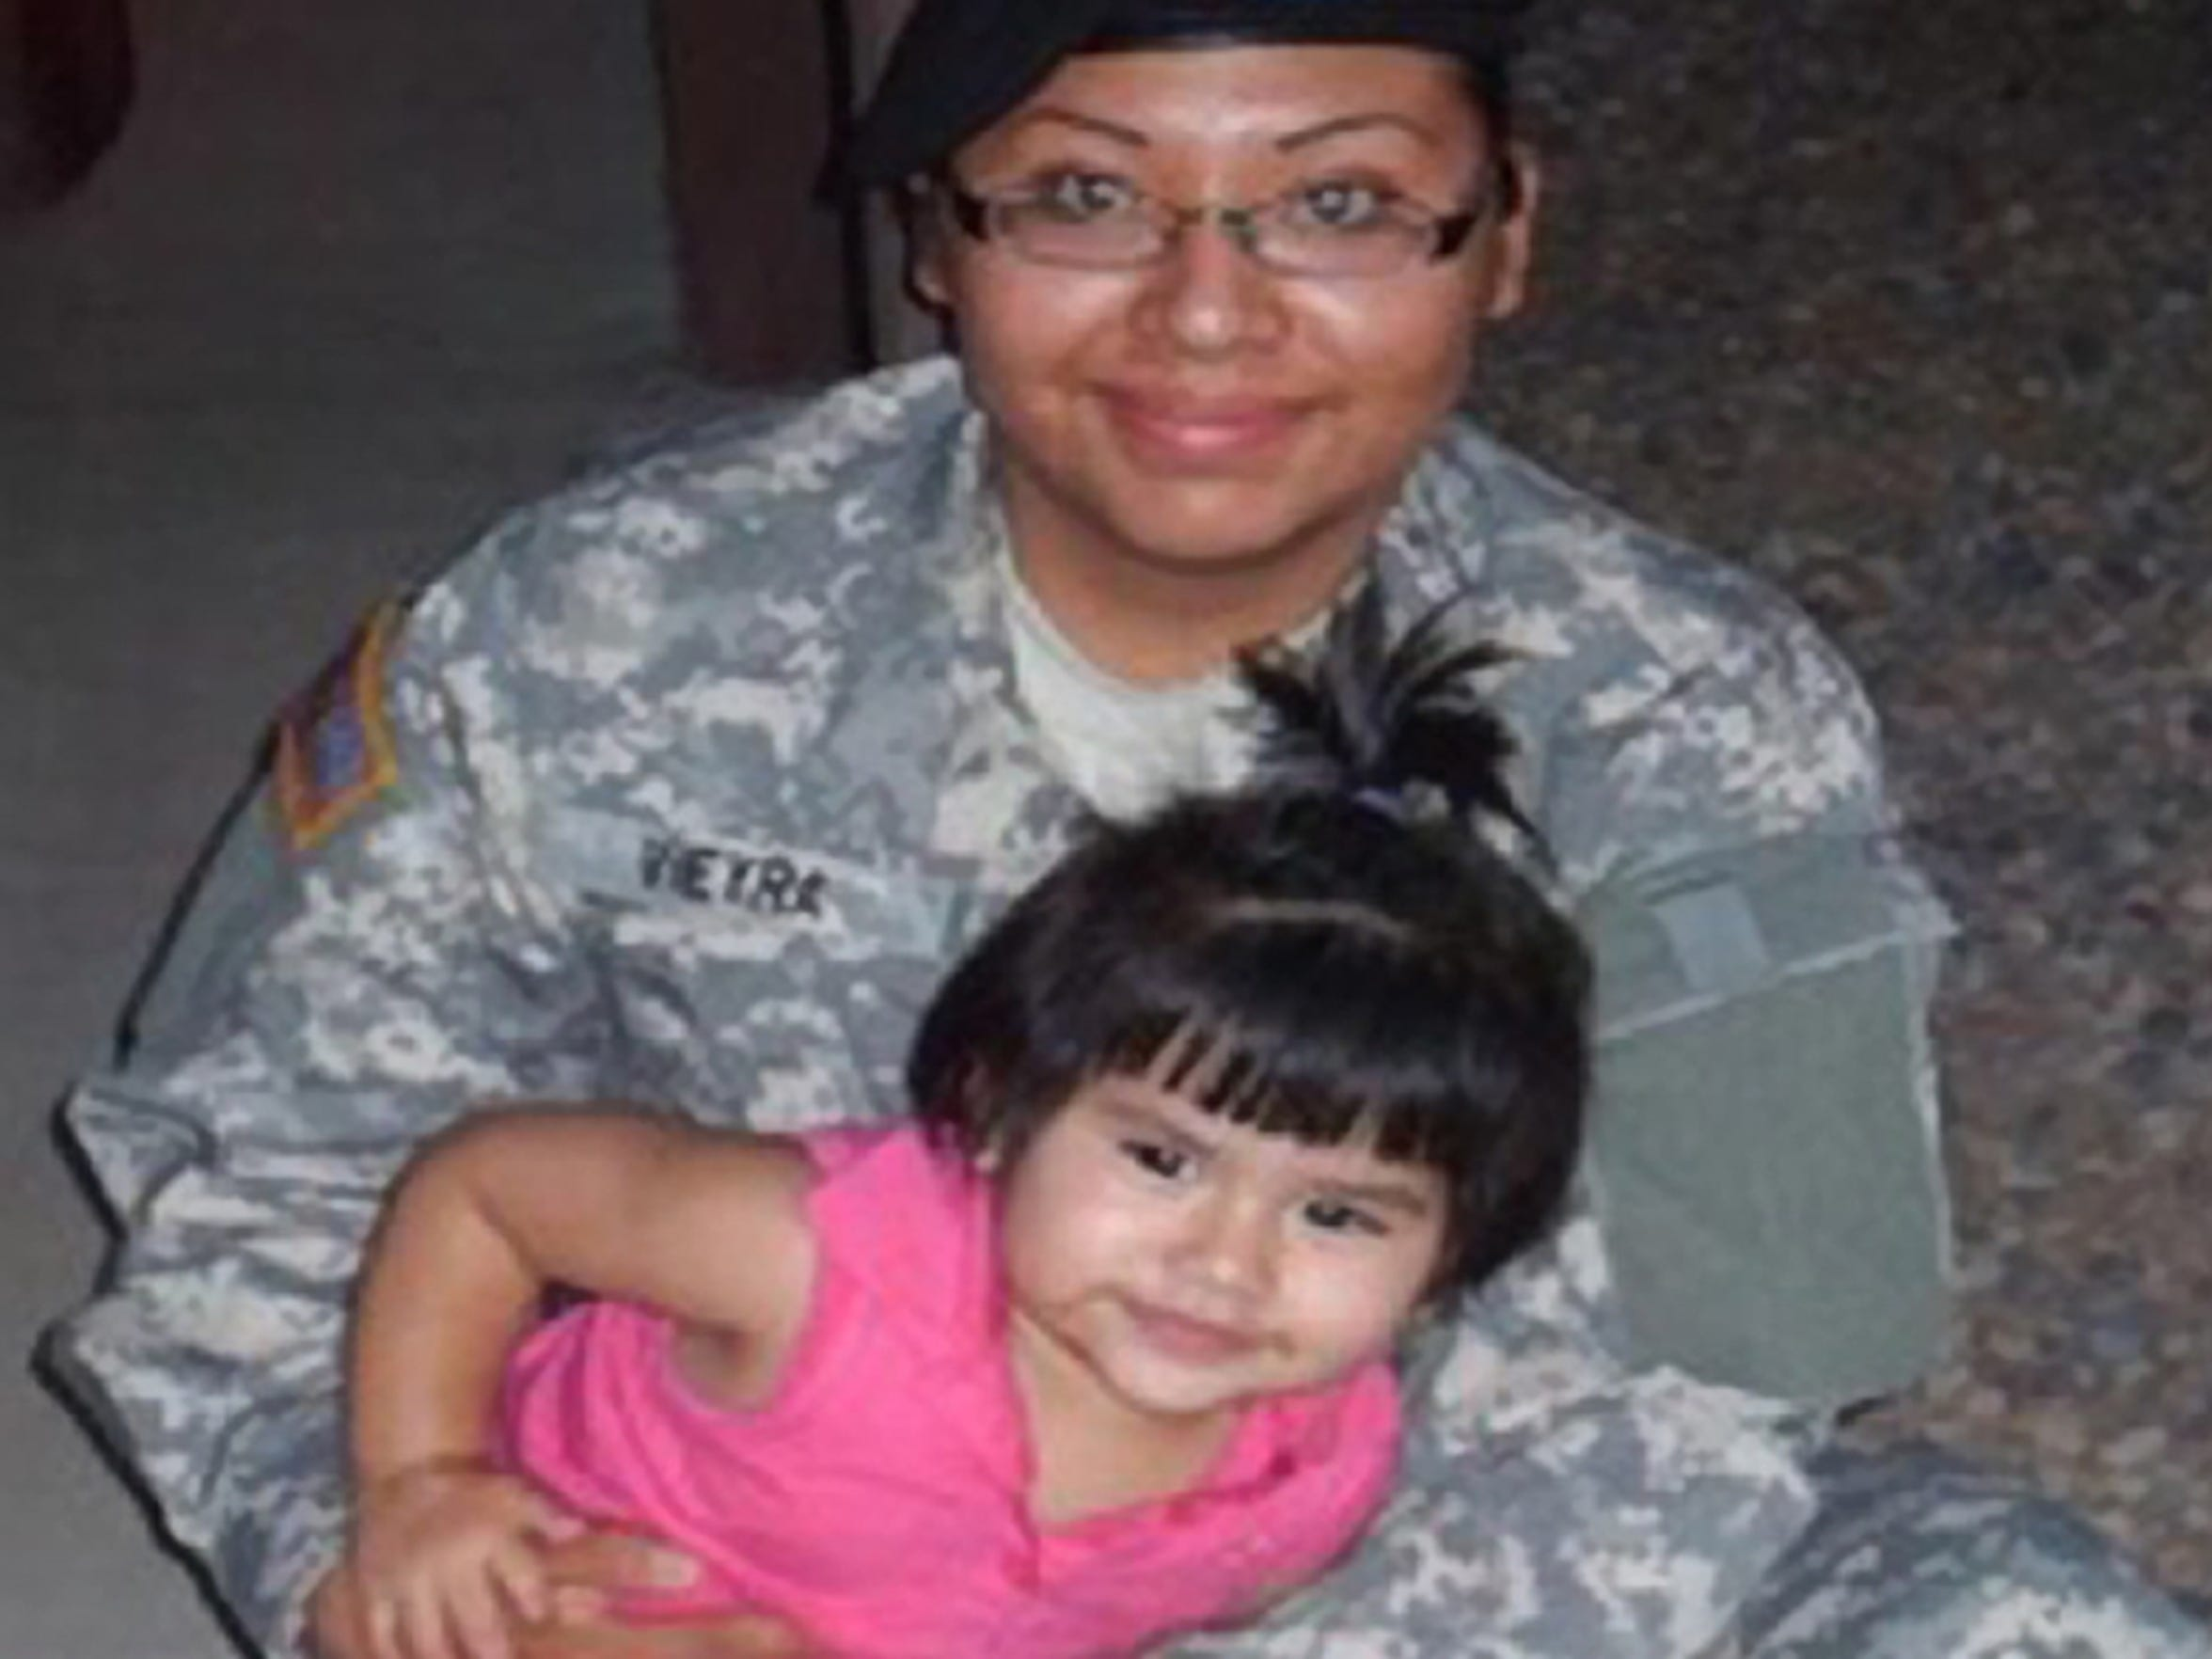 Barbara Vieyra, 22, of Mesa, died of injuries suffered when her Army military police unit was attacked with an improvised explosive device and rocket-propelled grenade fire in the Kunar province of Afghanistan on Sept. 18, 2010. She was assigned to the 64th Military Police Company, 720th MP Battalion, 89th MP Brigade, Fort Hood, Texas.